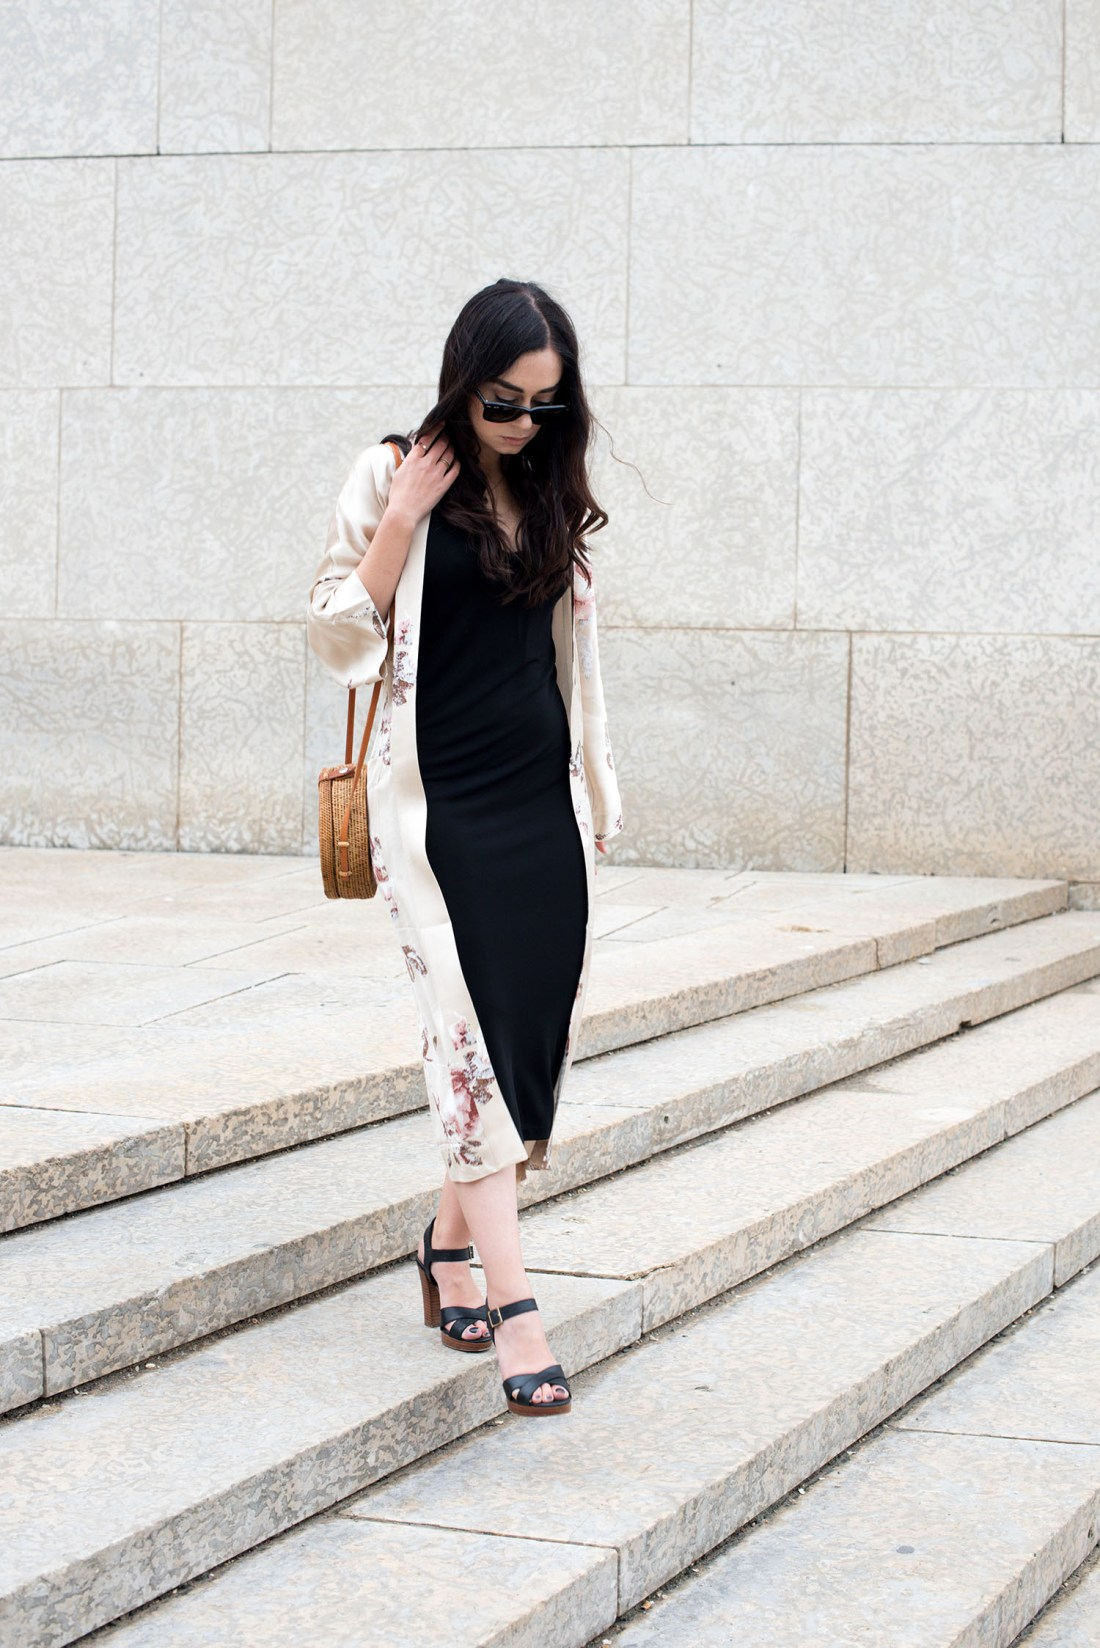 Top Winnipeg fashion blogger Cee Fardoe of Coco & Vera wears a Wilfred silk kimono and carries a round rattan bag from Etsy